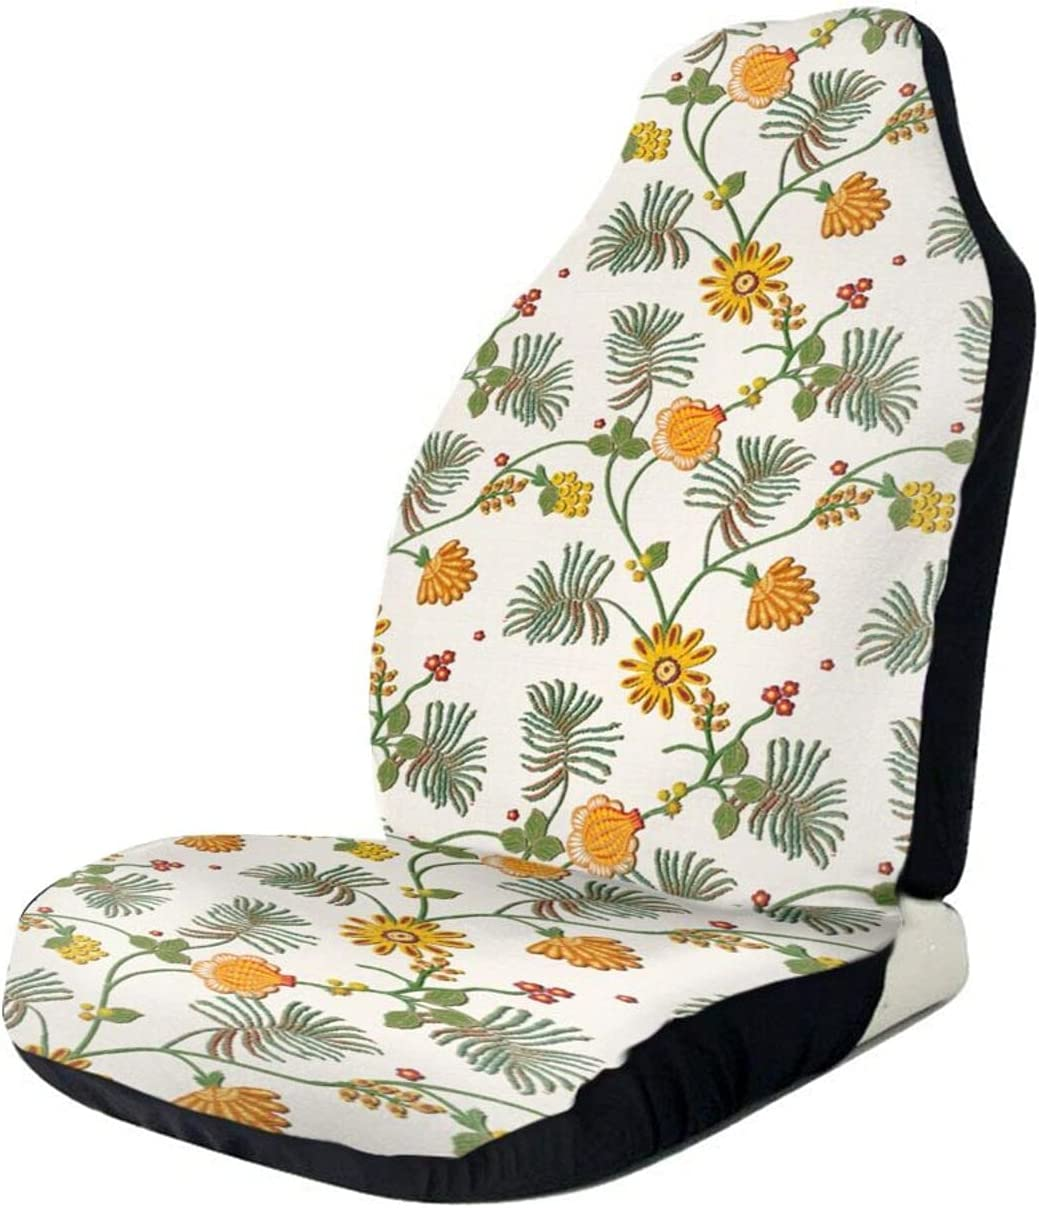 Max 78% OFF Spreading Sunflowers and Green Leaves - Car Seat Front Auto New product type